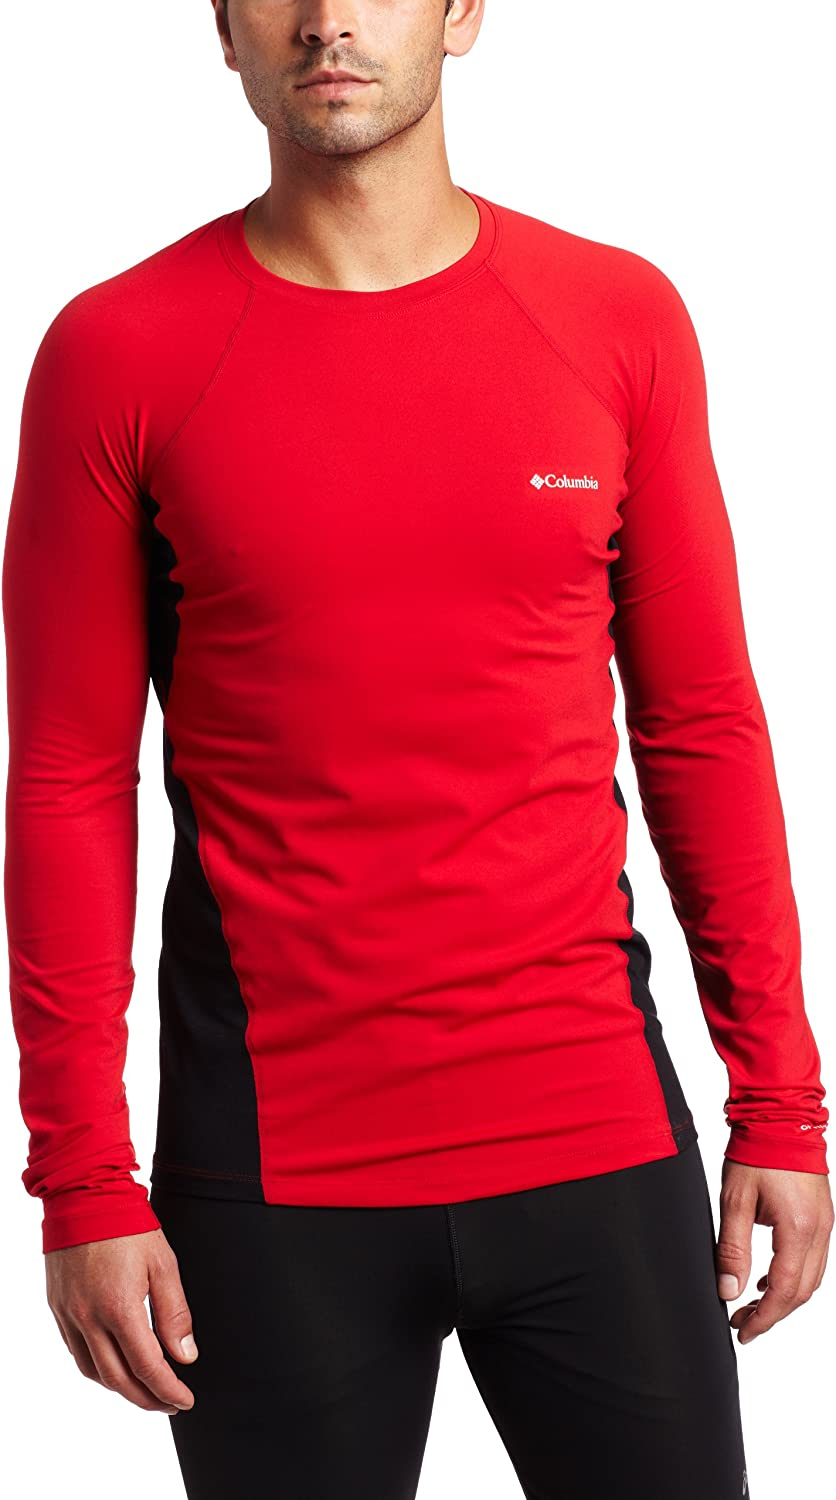 Columbia Men's Baselayer Midweight Nippon regular agency Long At the price of surprise Sleeve Top Red Intense